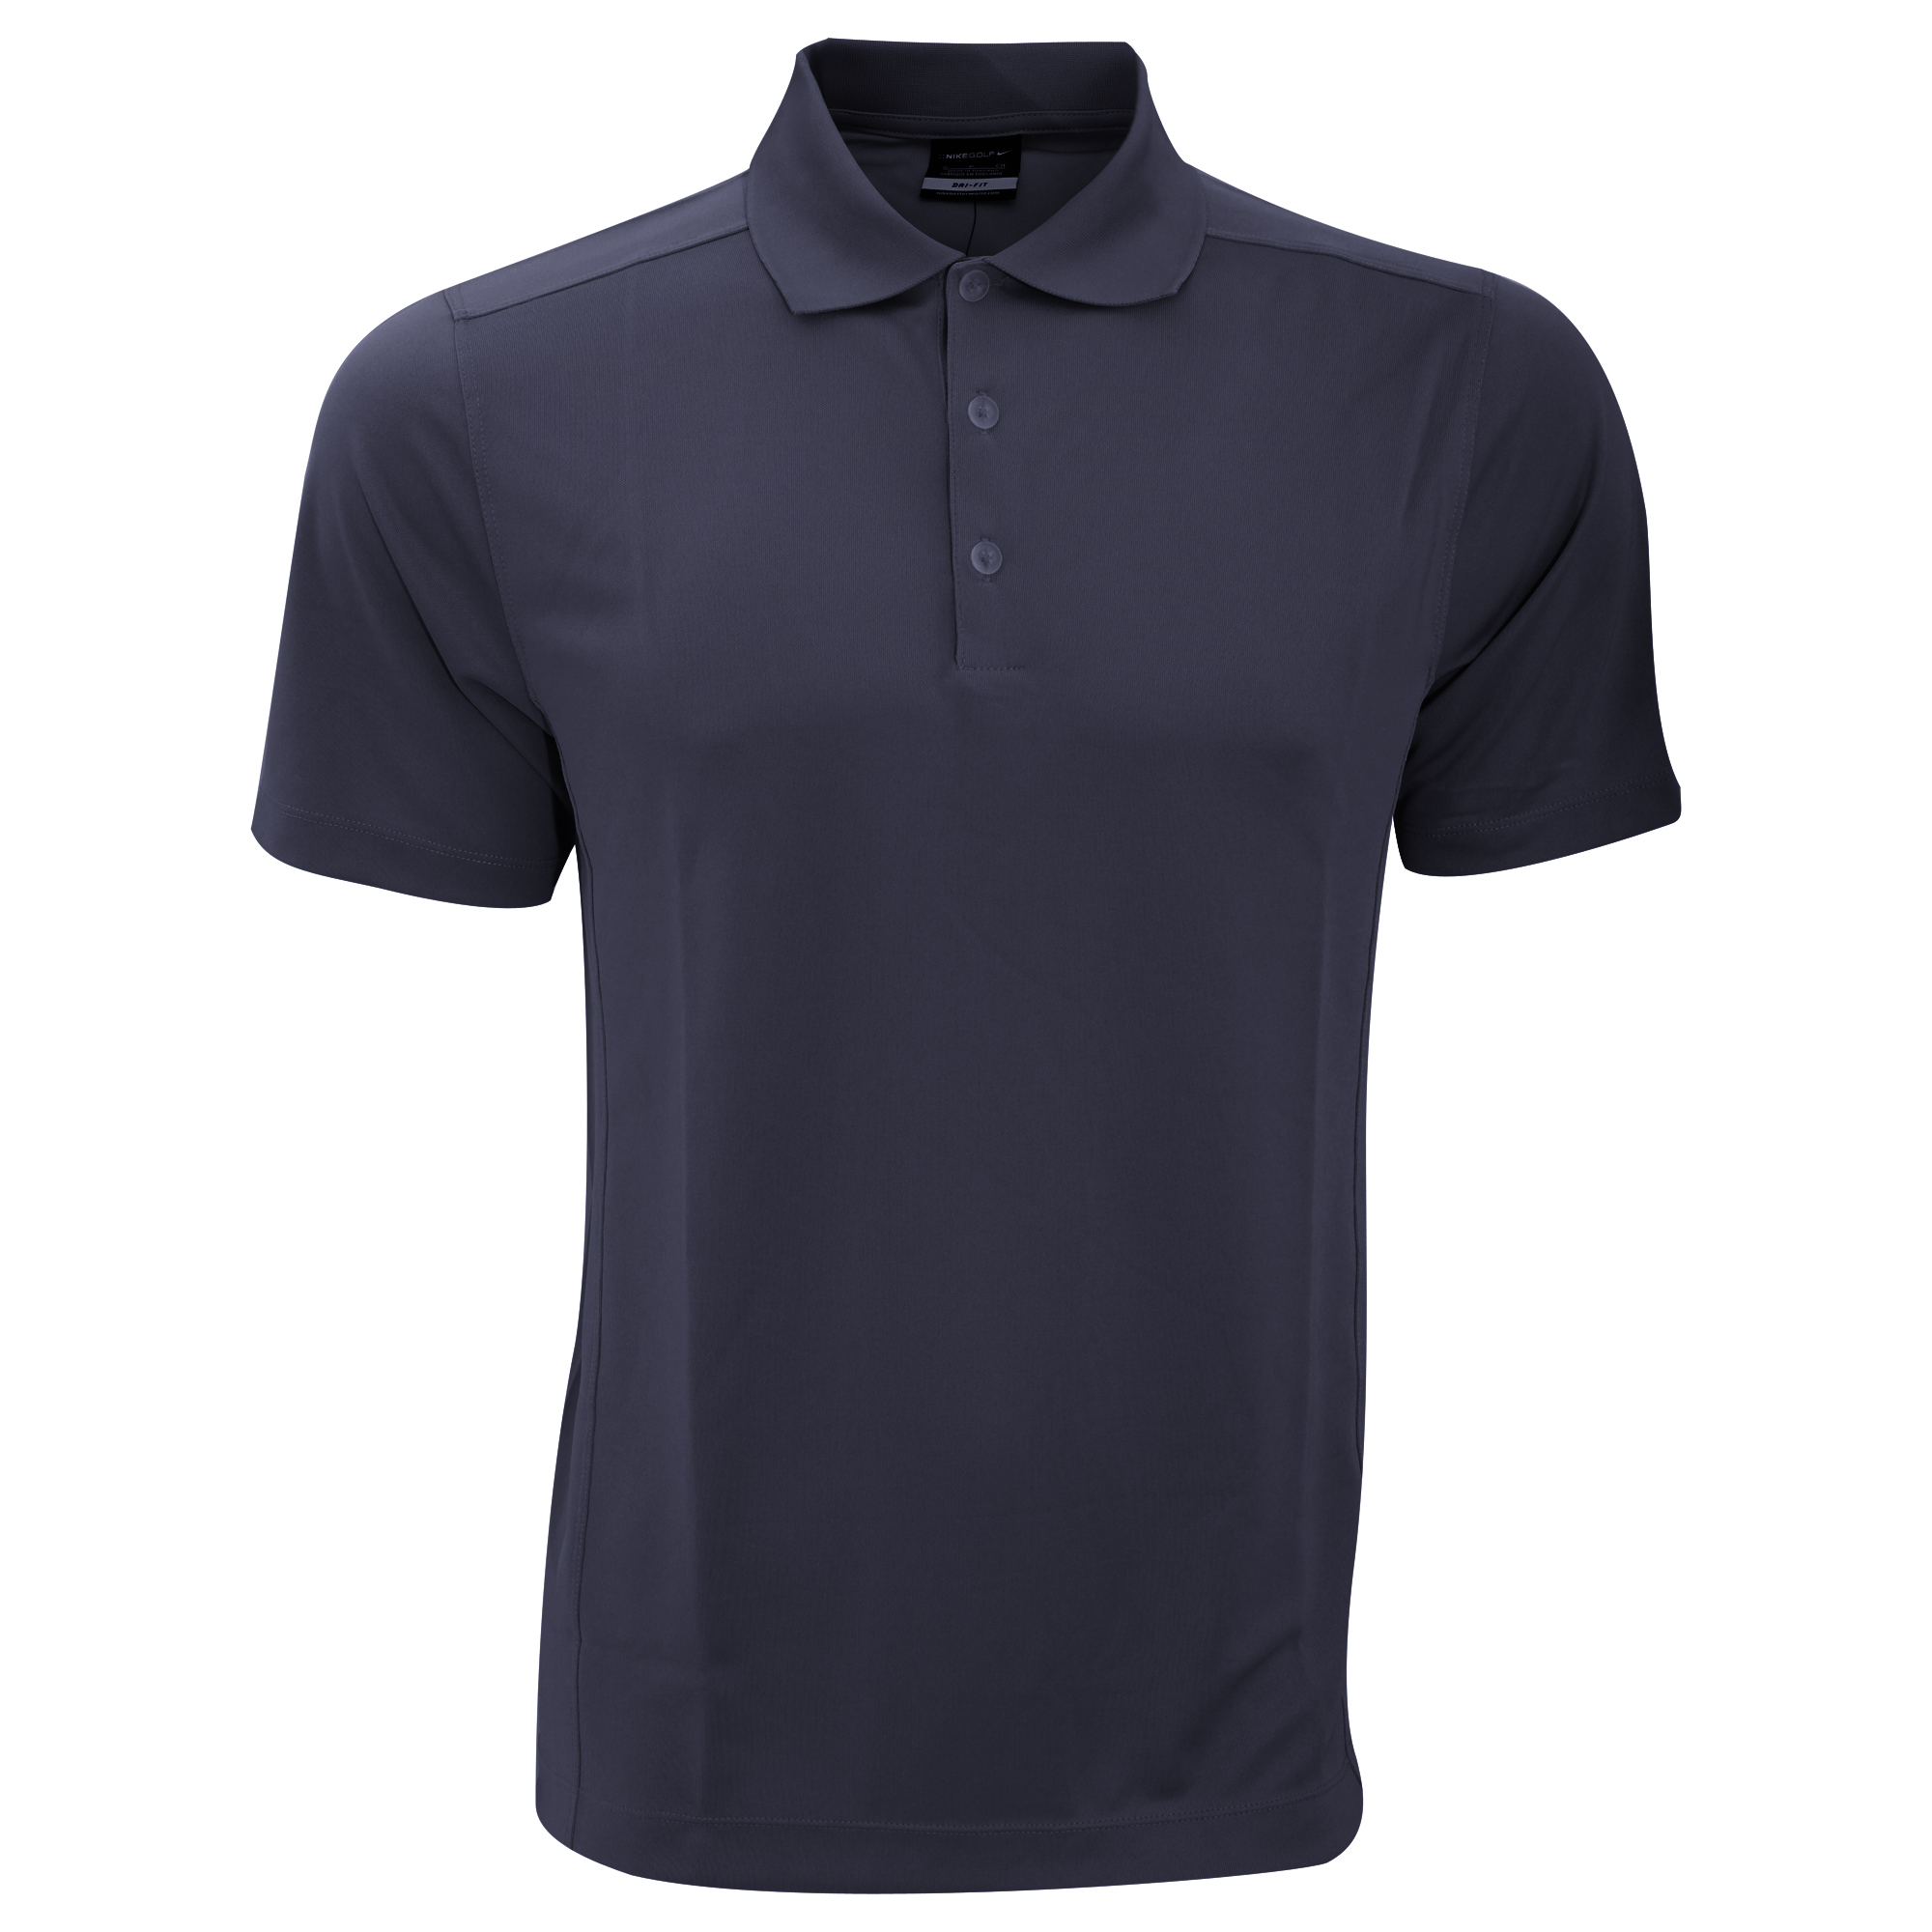 Nike mens dry fit sports golf polo shirt 6 colours s m l for Nike polo golf shirts